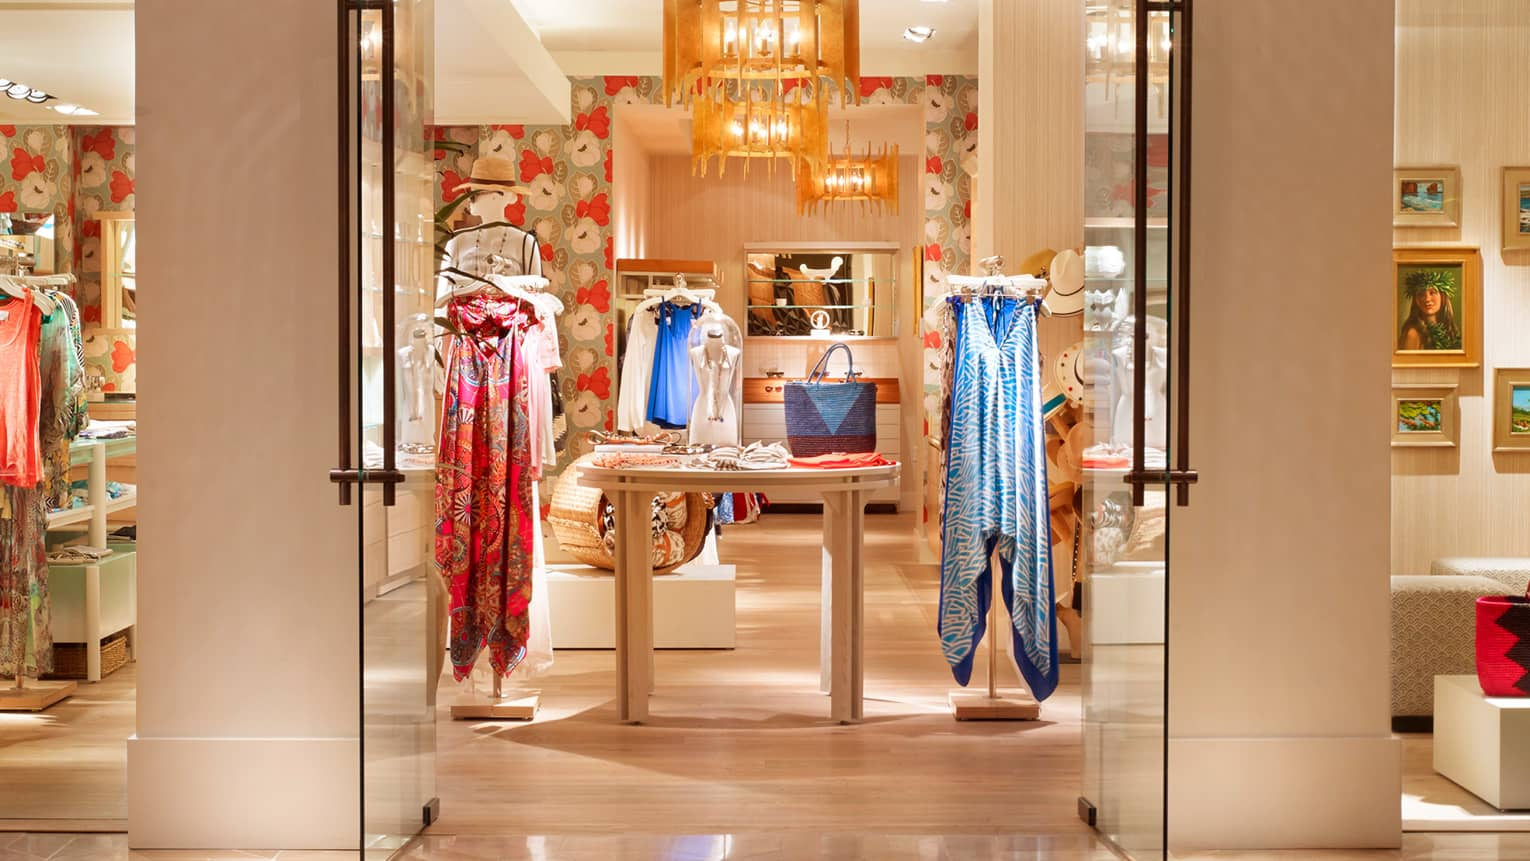 View through doors into boutique lobby store with colourful dresses on racks, table with scarves, purse